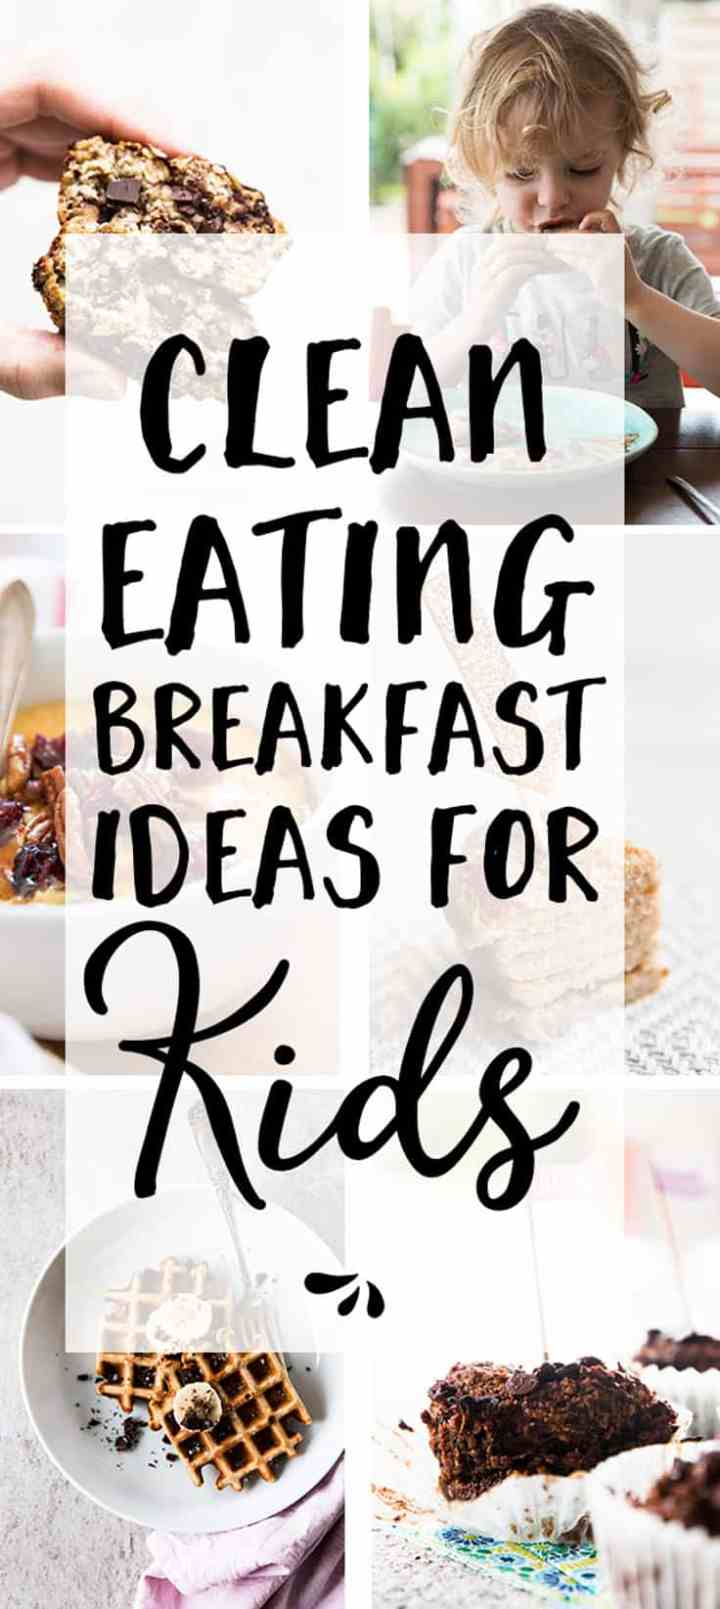 Easy Clean Eating Breakfast Ideas for Kids for simple, but healthy mornings. These recipes are great for adults too, so you only have to prep one meal! From waffles to vegan muffins and pancakes, gluten free oatmeal, meal prep burritos and ideas using eggs - these recipes are either quick and easy to prepare or suitable to make ahead!